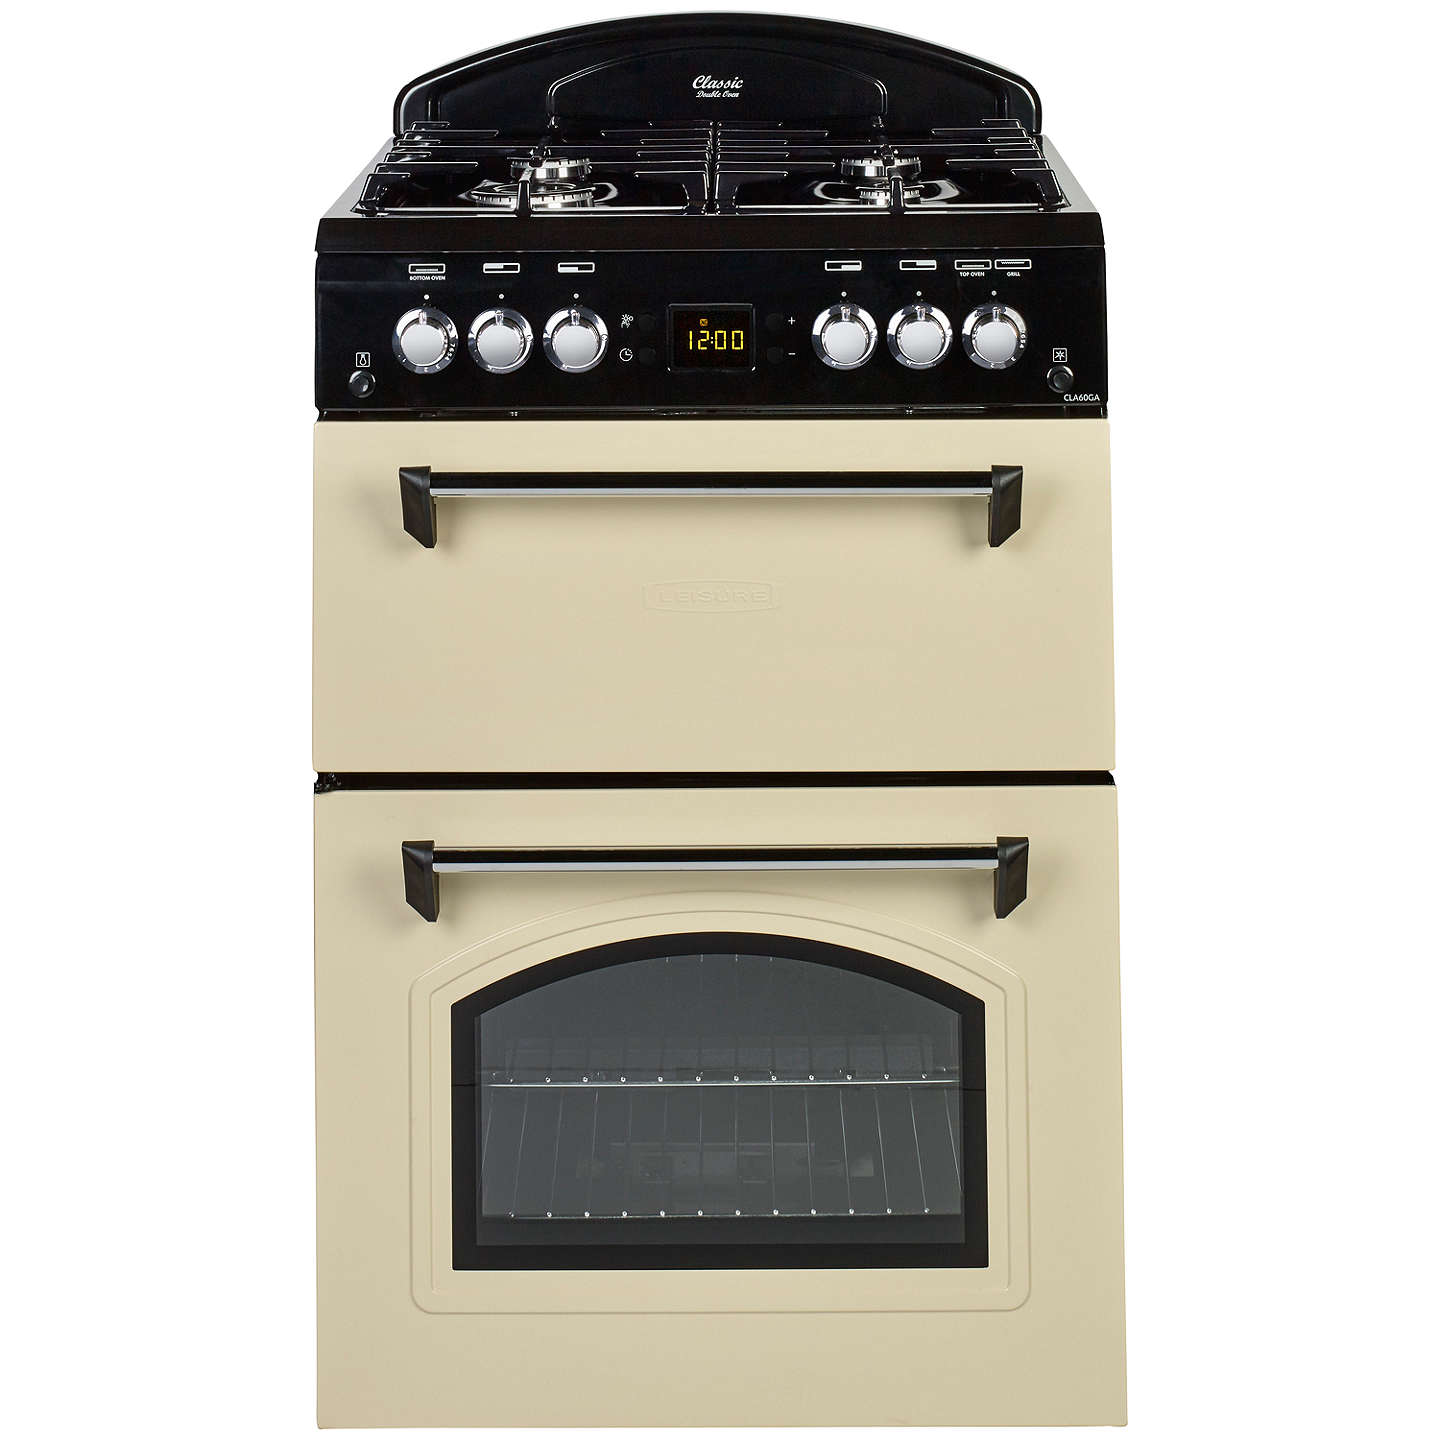 leisure cla60ga classic gas cooker at john lewis. Black Bedroom Furniture Sets. Home Design Ideas